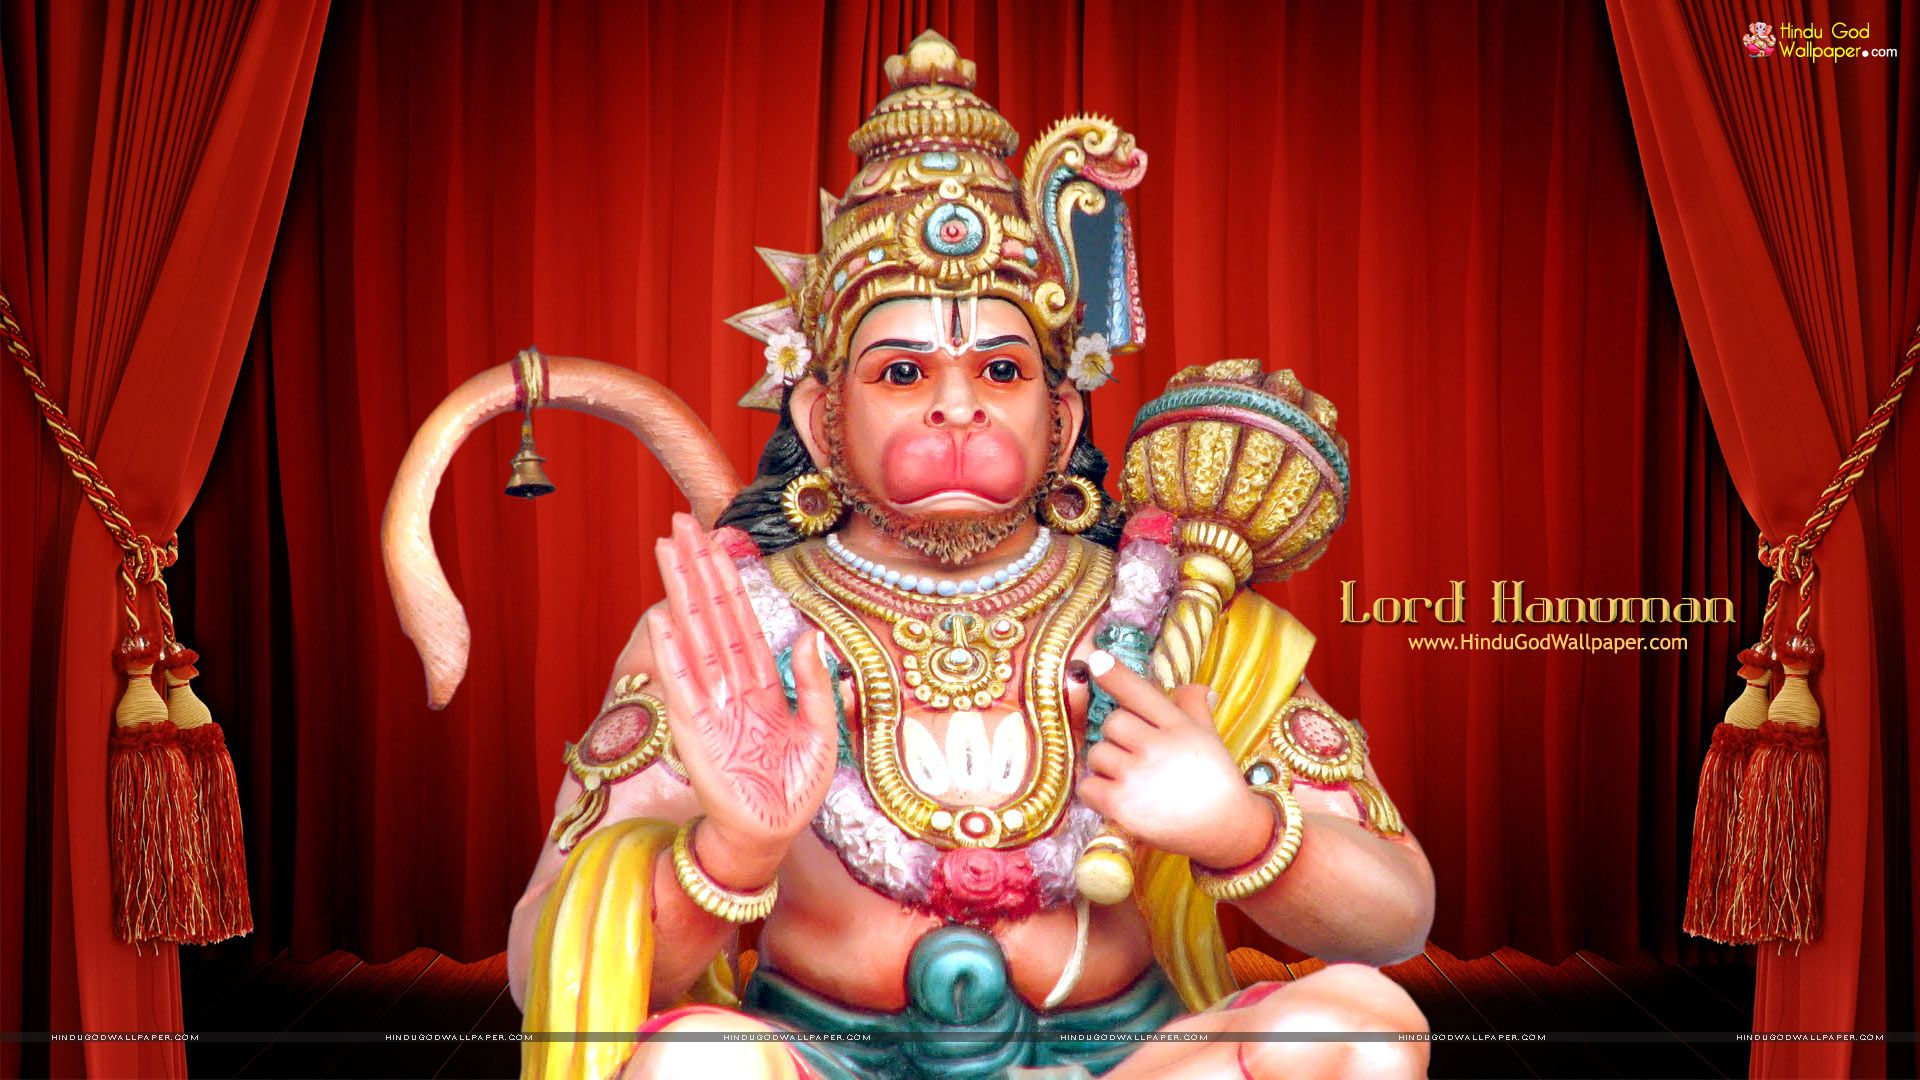 Hanuman Wallpaper Hd 1080p Widescreen Download Lord Hanuman Wallpapers